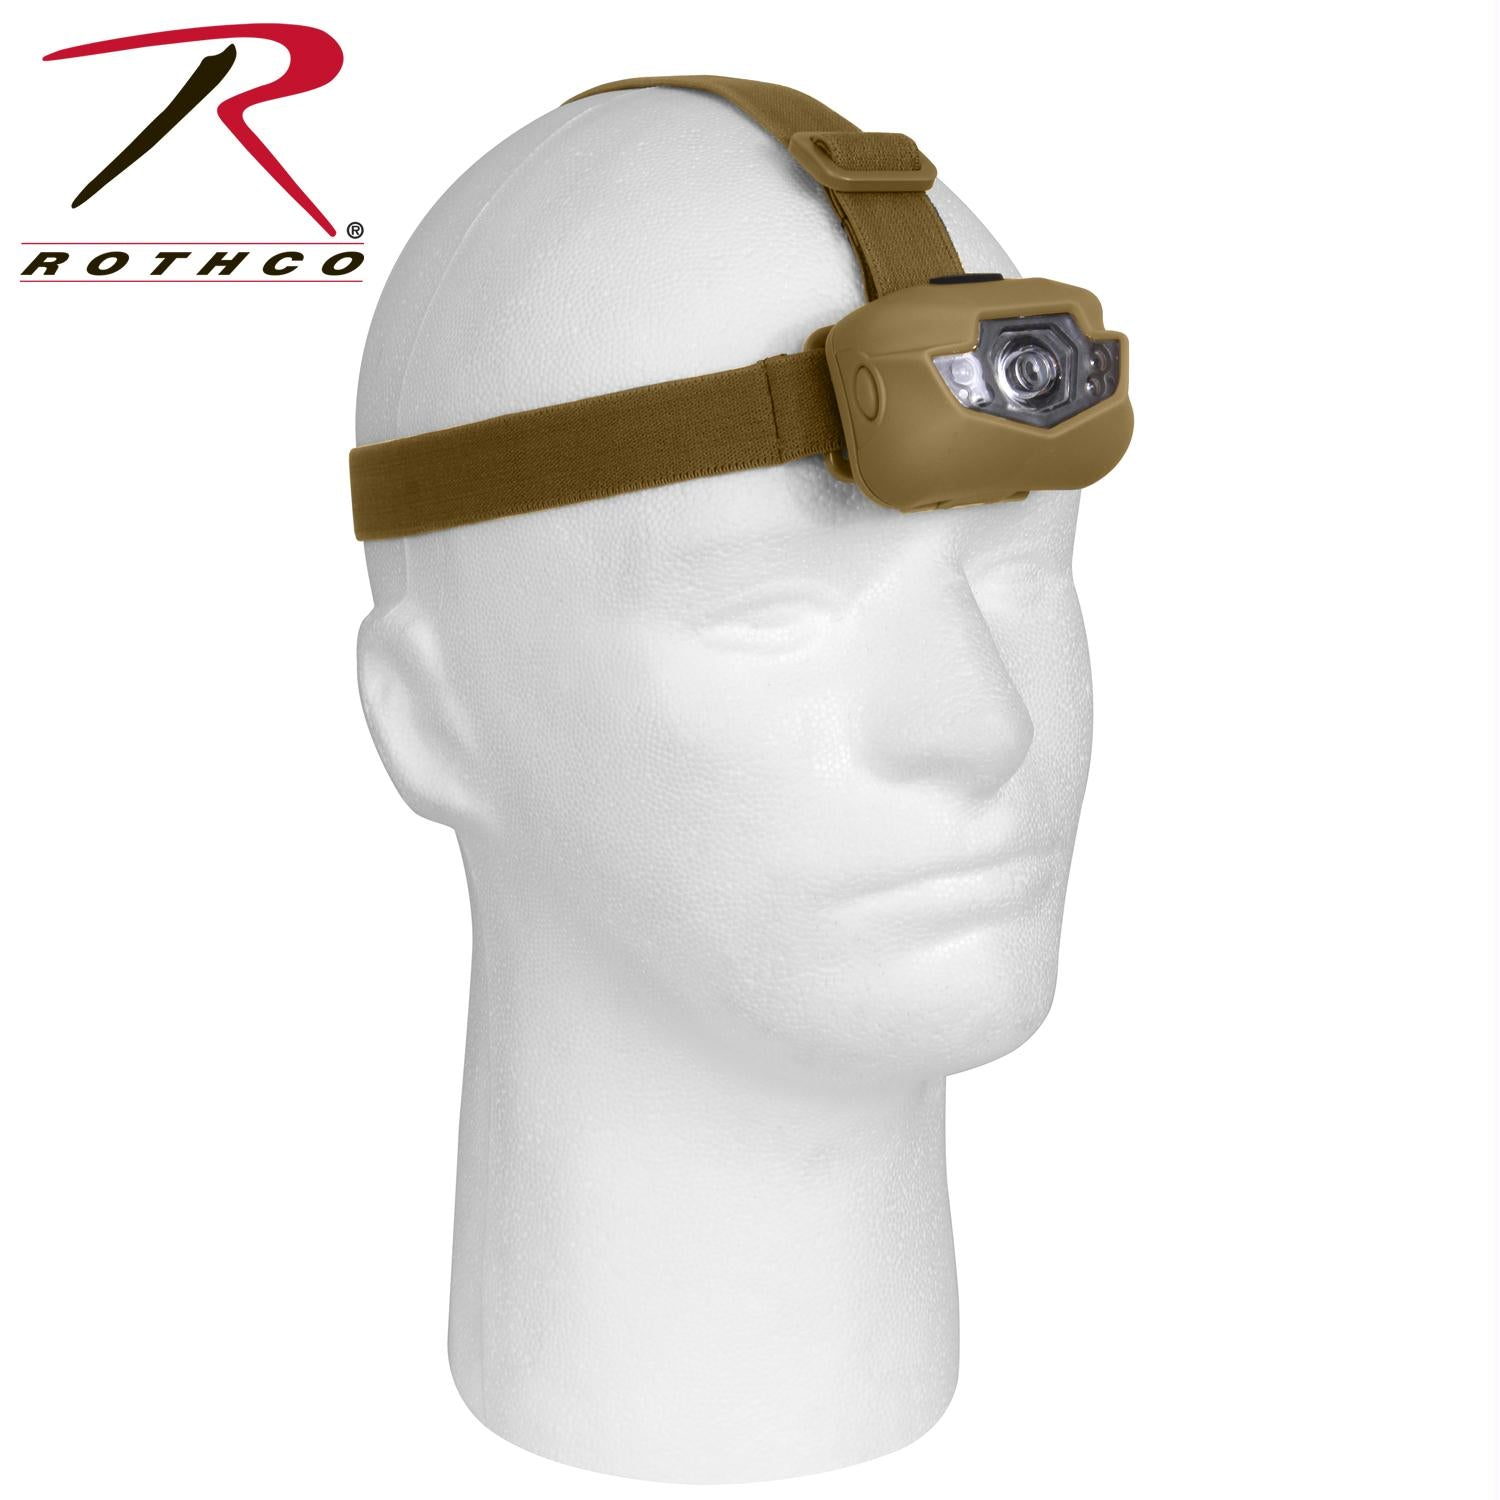 Rothco LED Headlamp - Coyote Brown